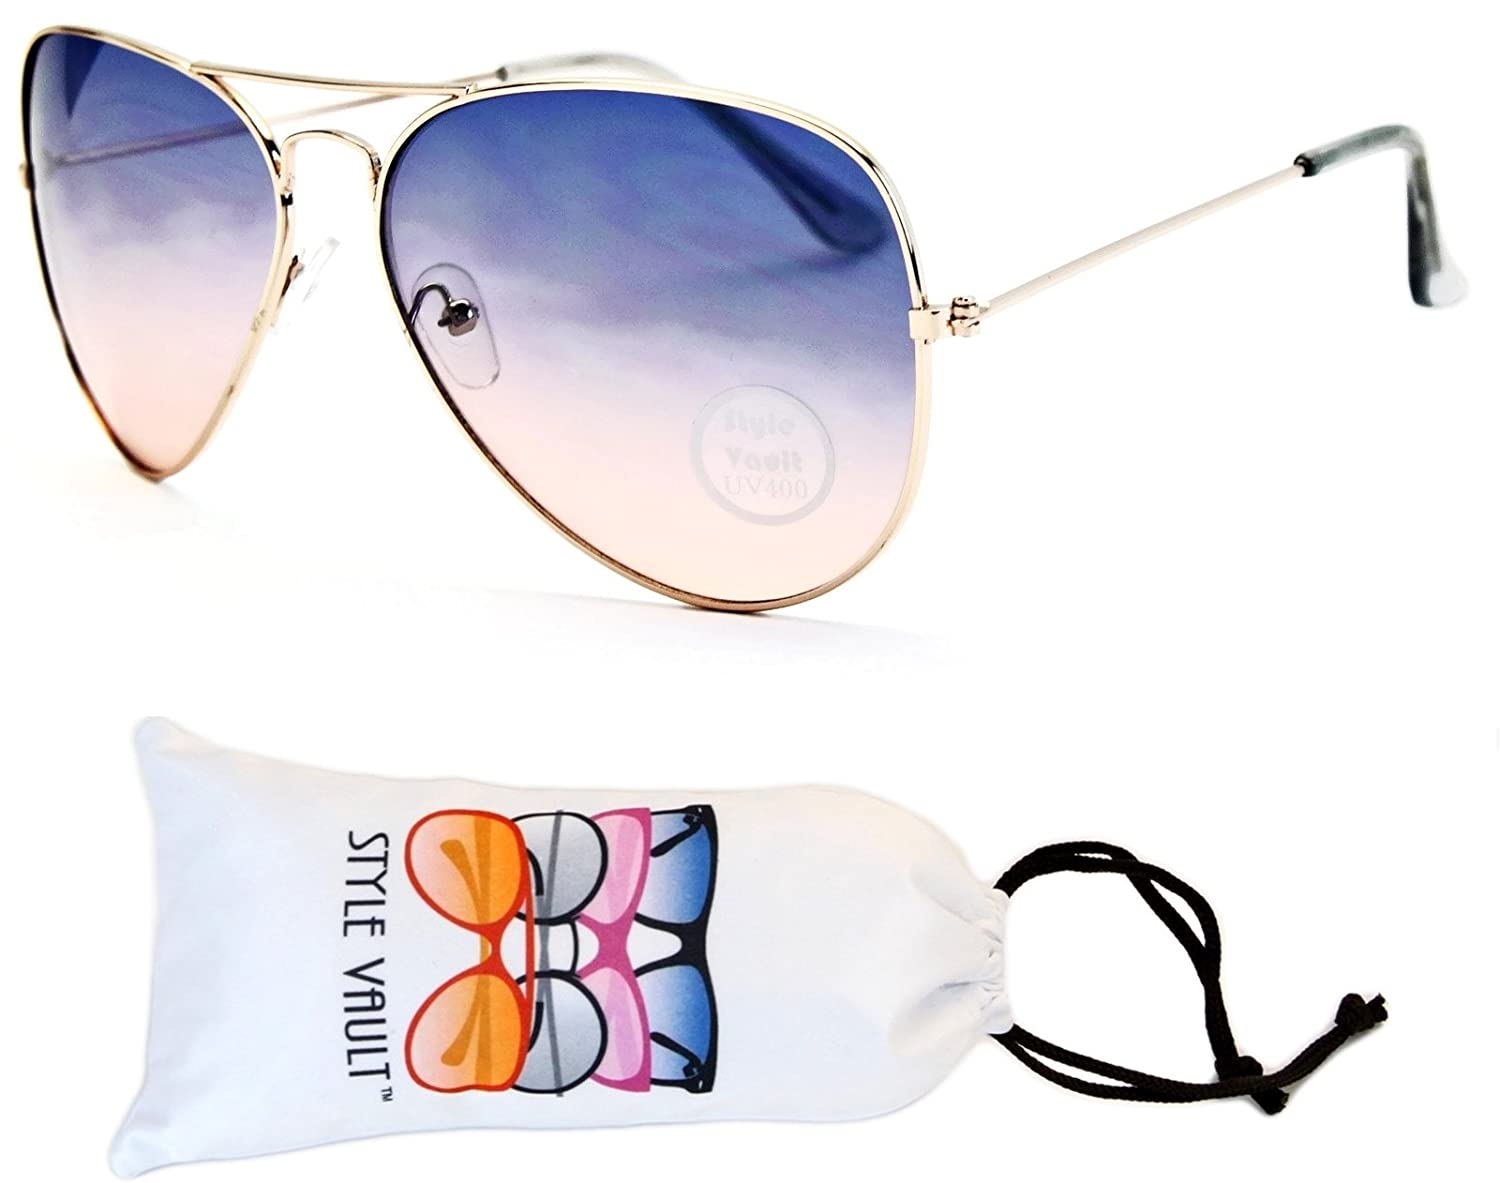 A67-vp Aviator Pilot Colored Lens Metal Sunglasses